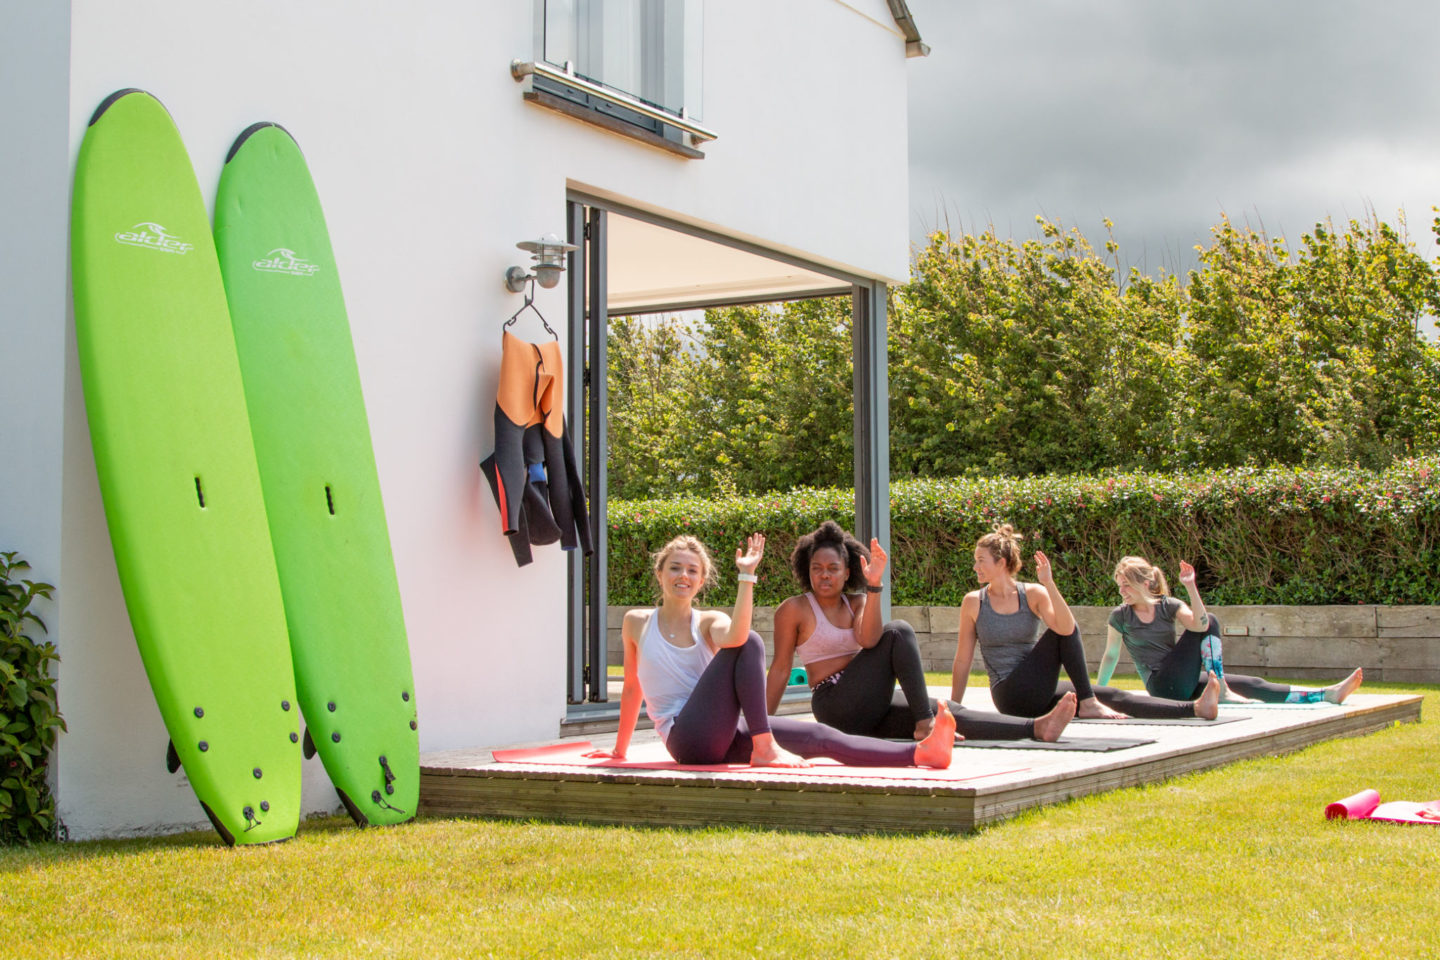 Freewave surf academy hosting a yoga class on their fitness retreat in the garden of a house